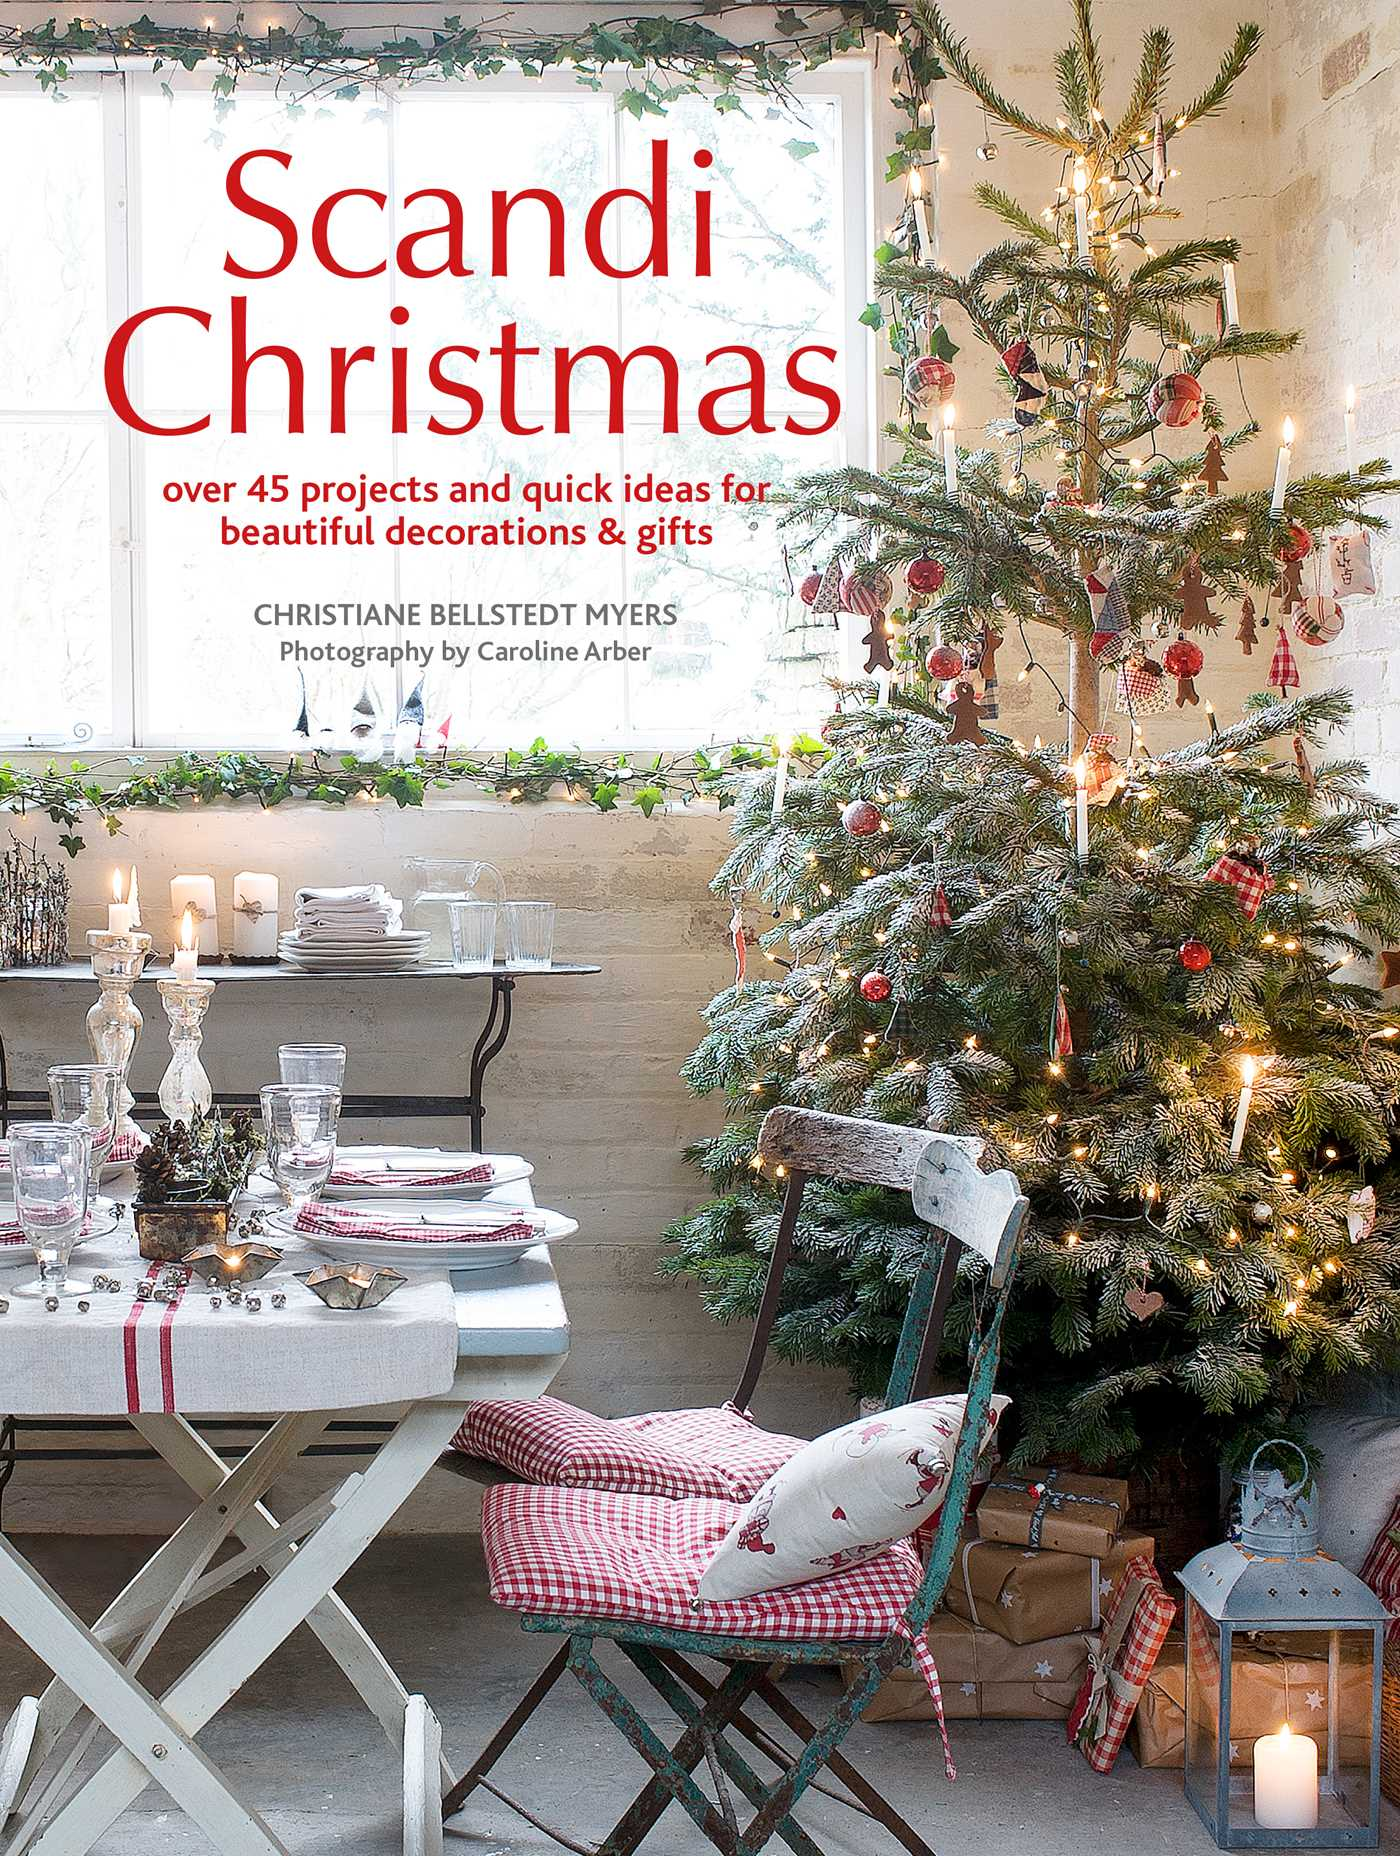 scandi christmas 9781782494720 hr - Rural King Christmas Decorations